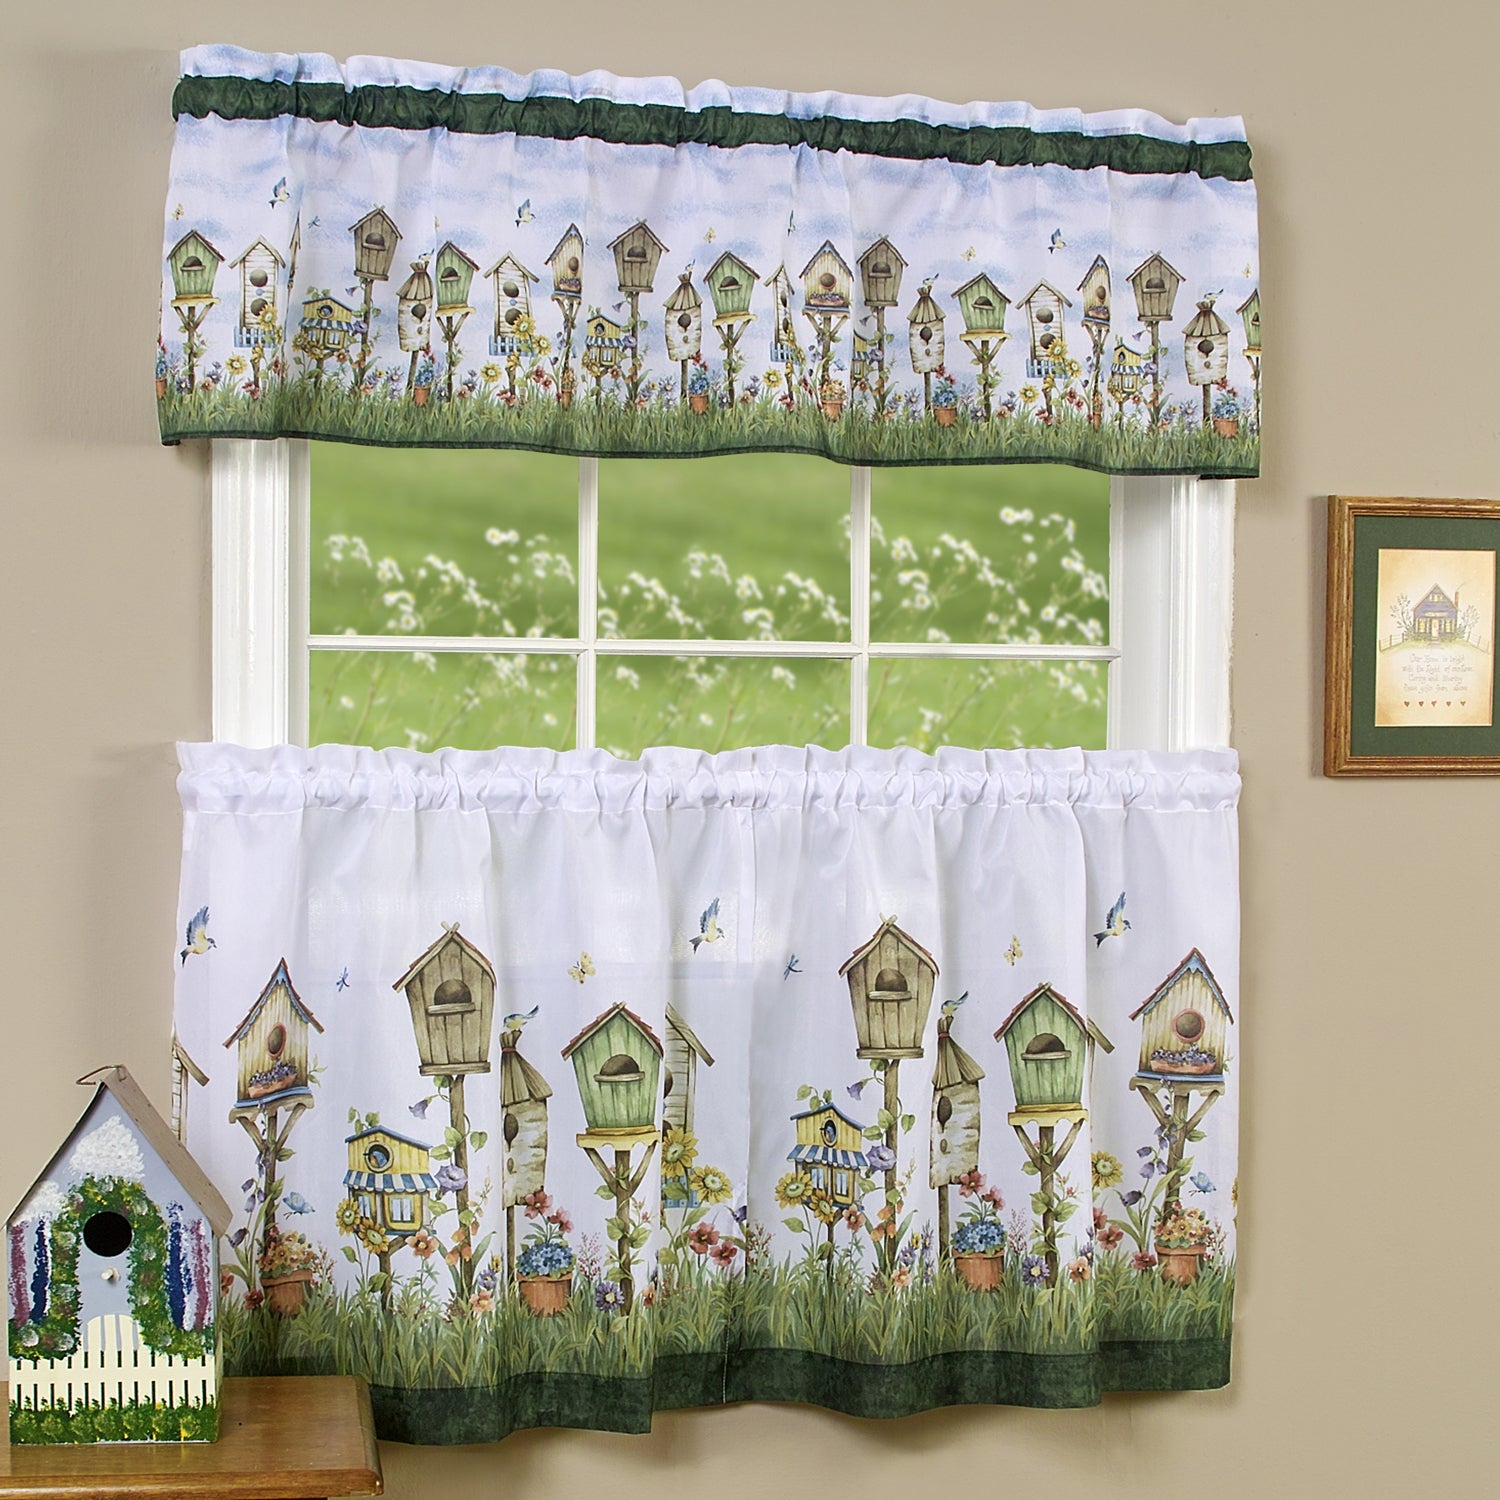 Traditional Two Piece Tailored Tier And Valance Window Curtains Set With Whimsical Birdhouse Print – 36 Inch Inside Traditional Two Piece Tailored Tier And Valance Window Curtains (View 2 of 20)